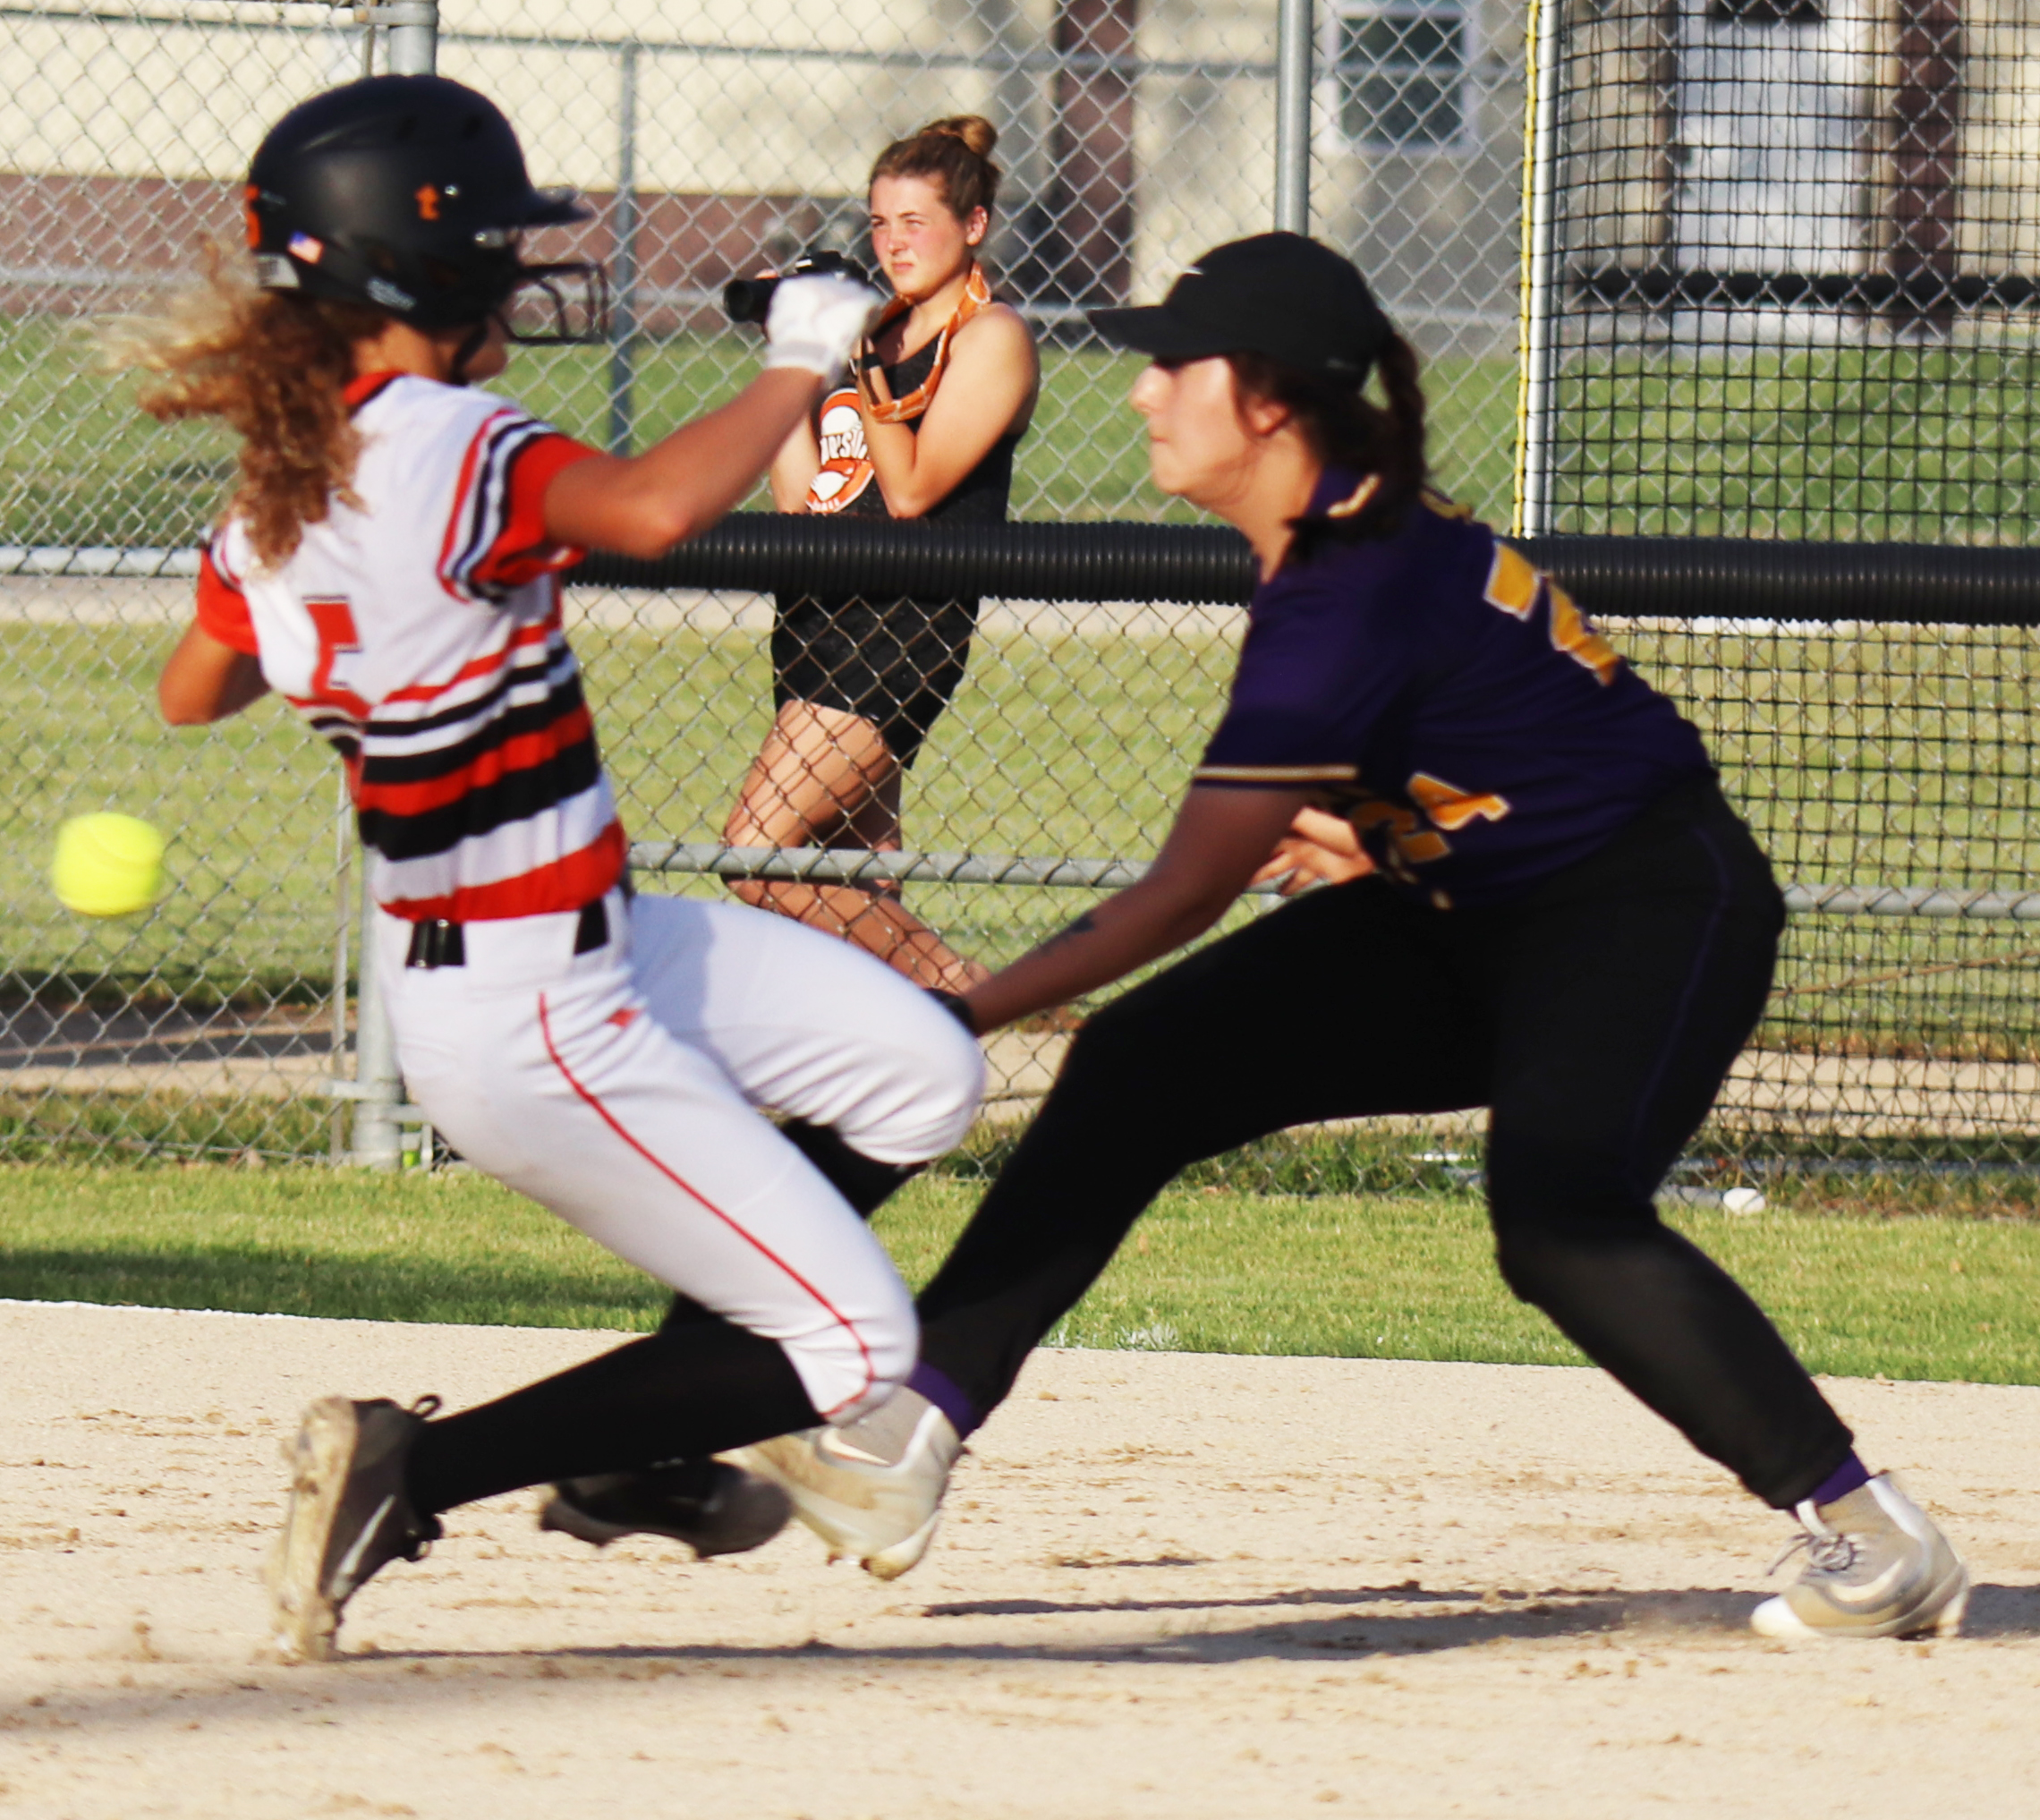 Comets rout Huskies, 15-0, while improving to 16-0